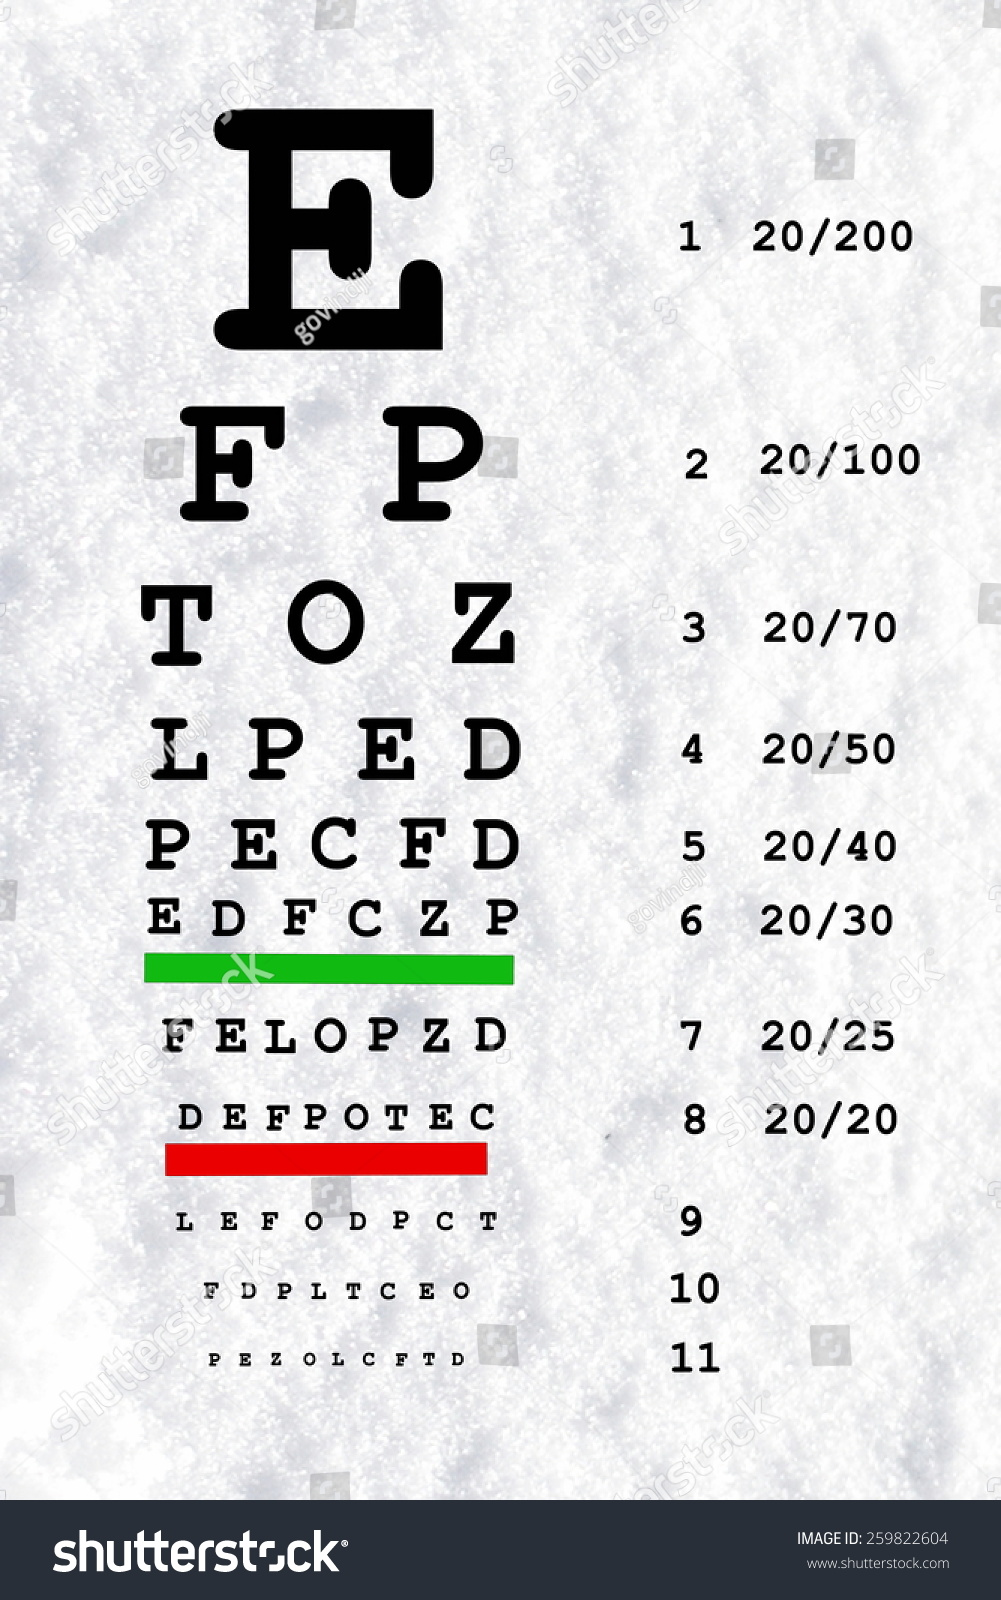 Eye Test Chart Use By Doctors Illustration Ez Canvas